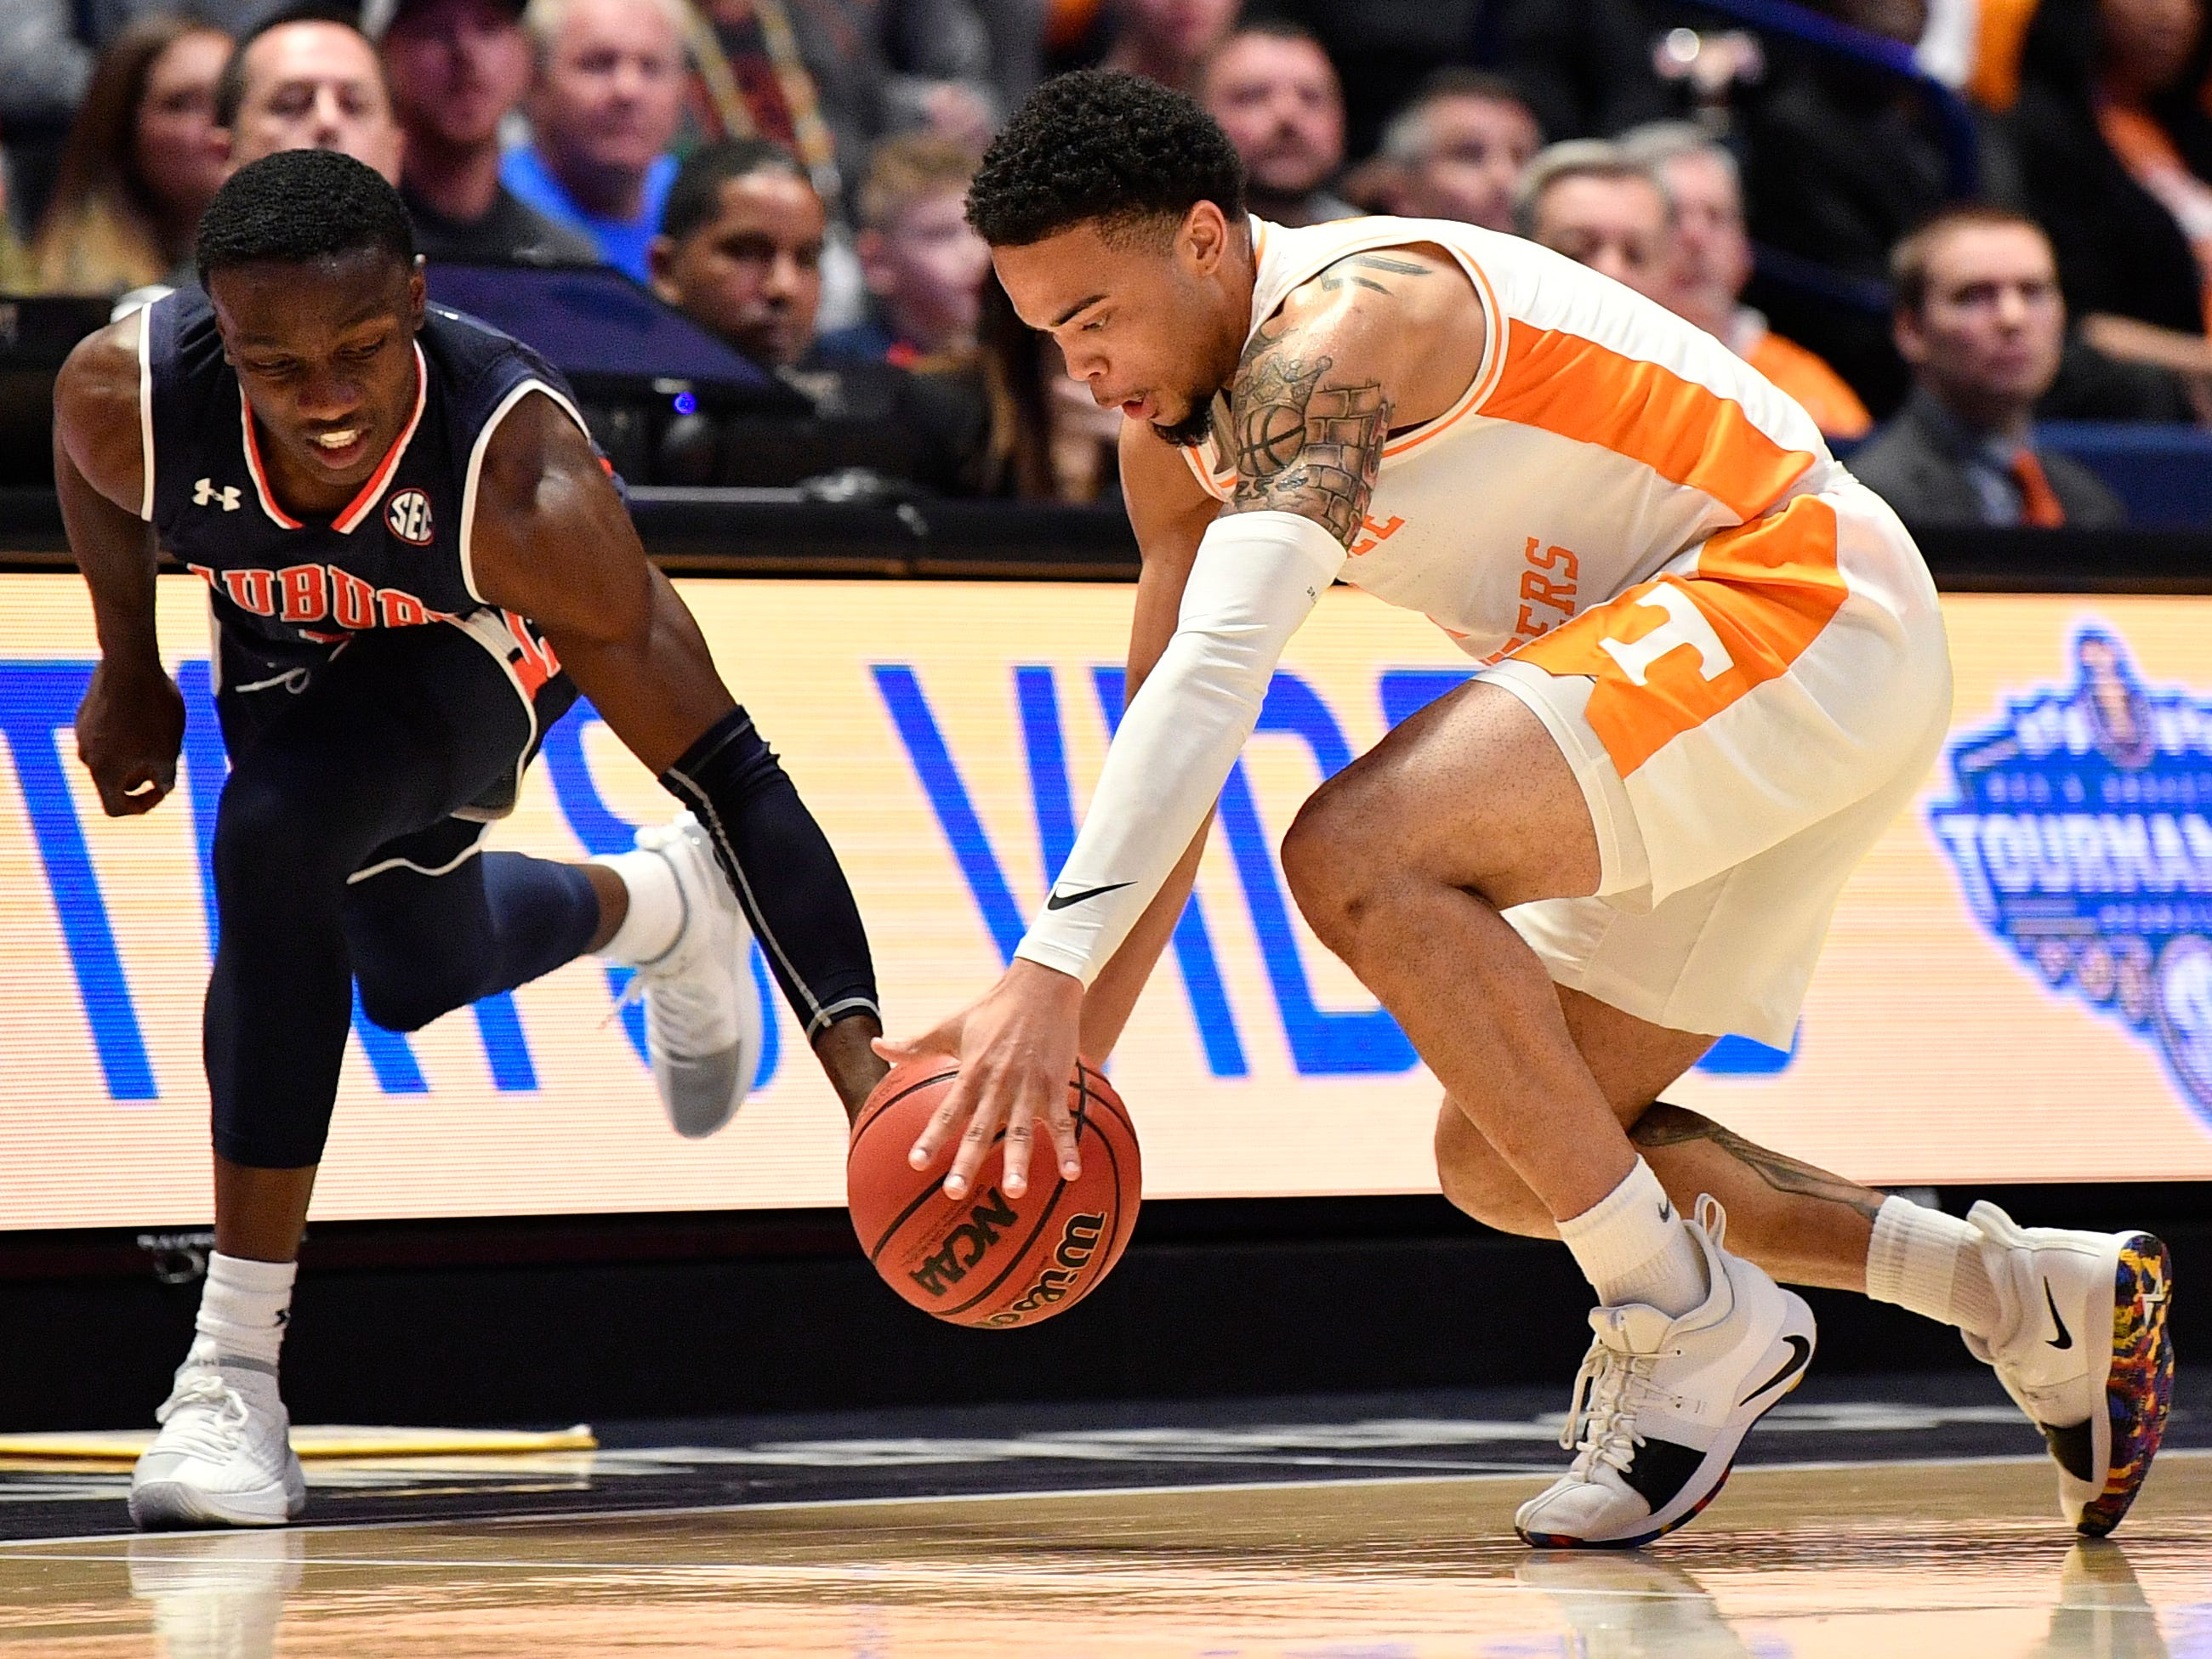 Auburn guard Jared Harper (1) and Tennessee guard Lamonte Turner (1) battle for a ball during the second half of the SEC Men's Basketball Tournament championship game at Bridgestone Arena in Nashville, Tenn., Sunday, March 17, 2019.